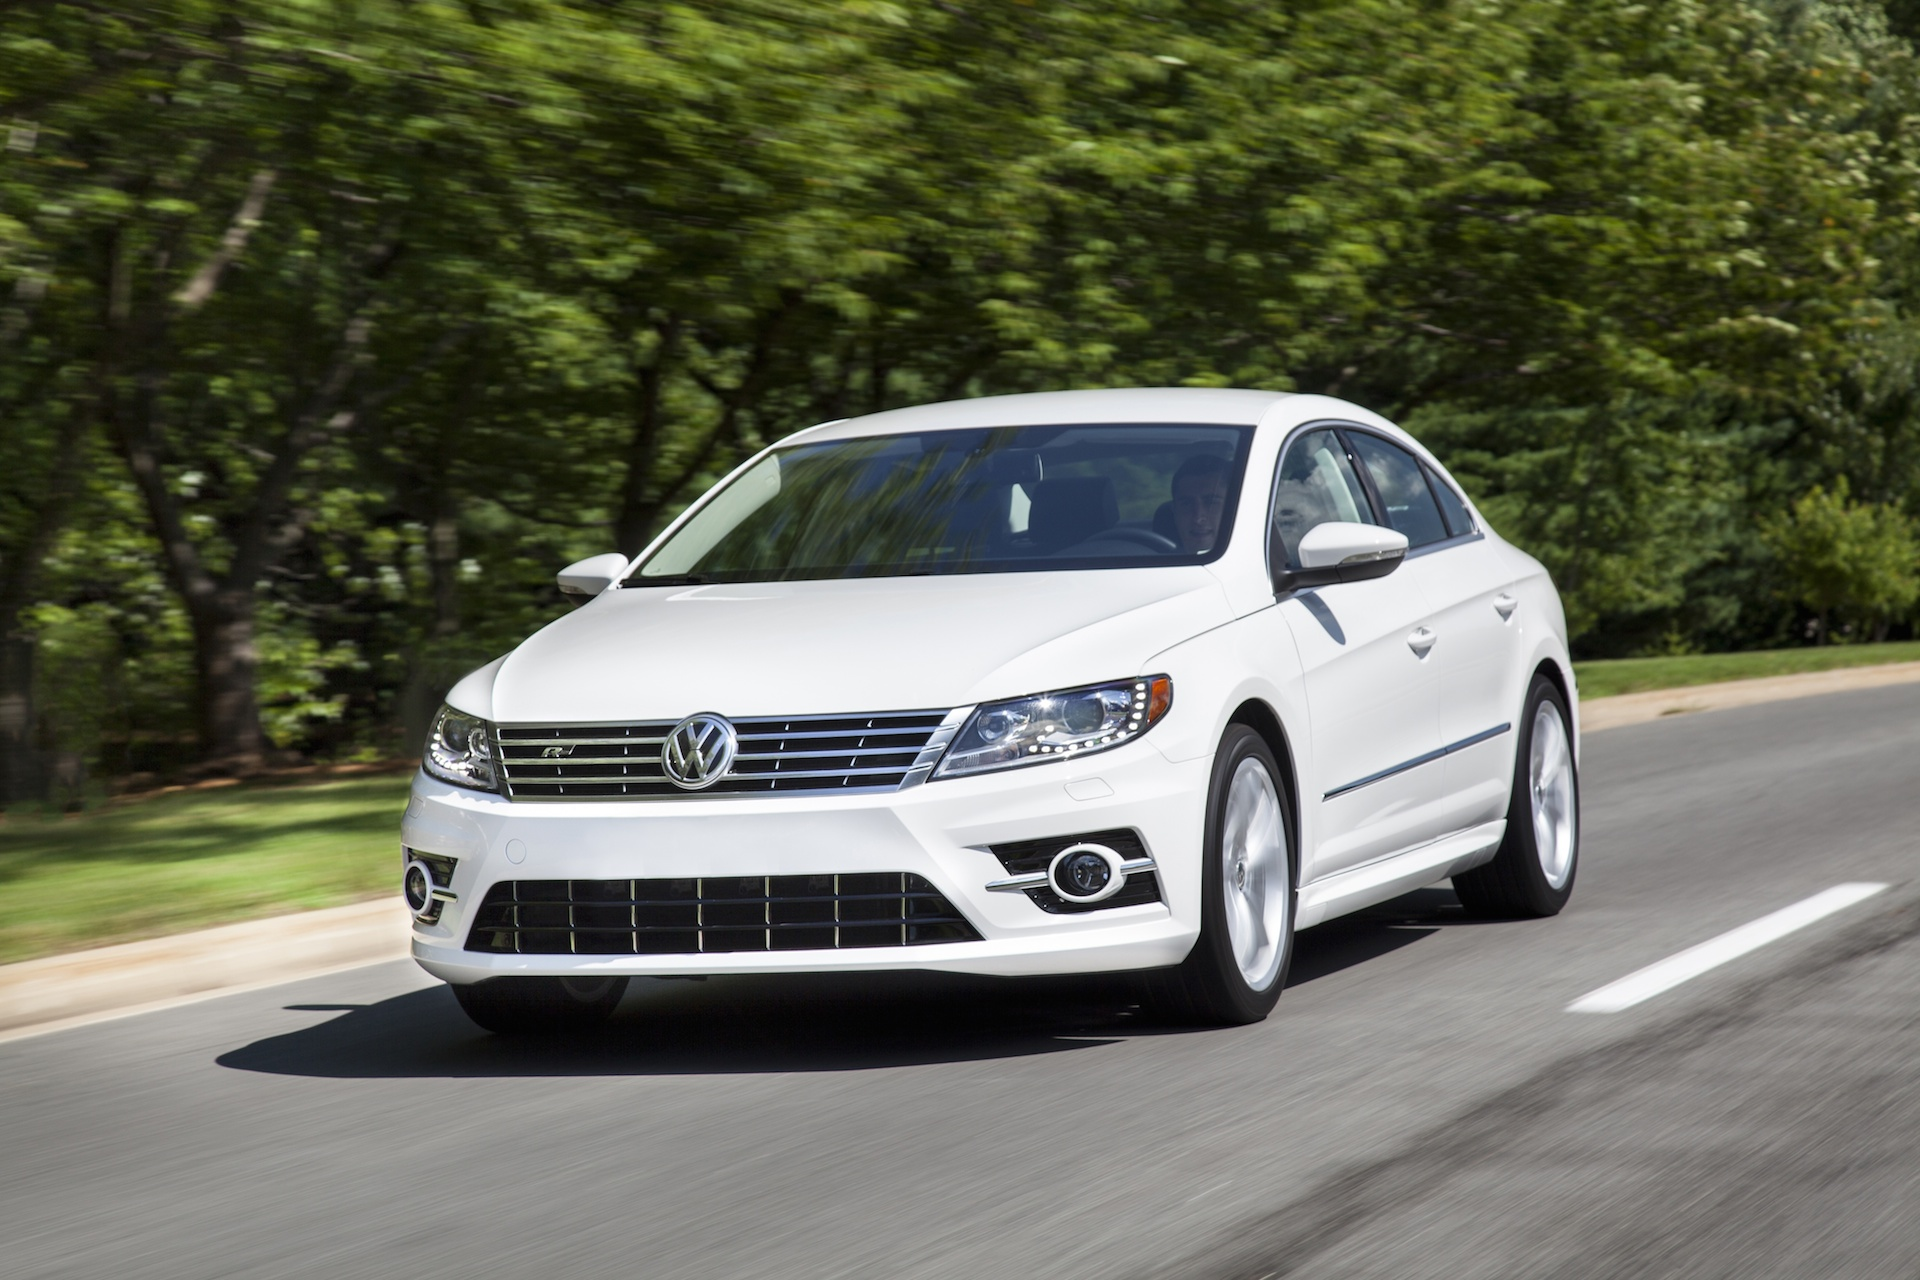 2015 volkswagen cc vw features review the car connection. Black Bedroom Furniture Sets. Home Design Ideas